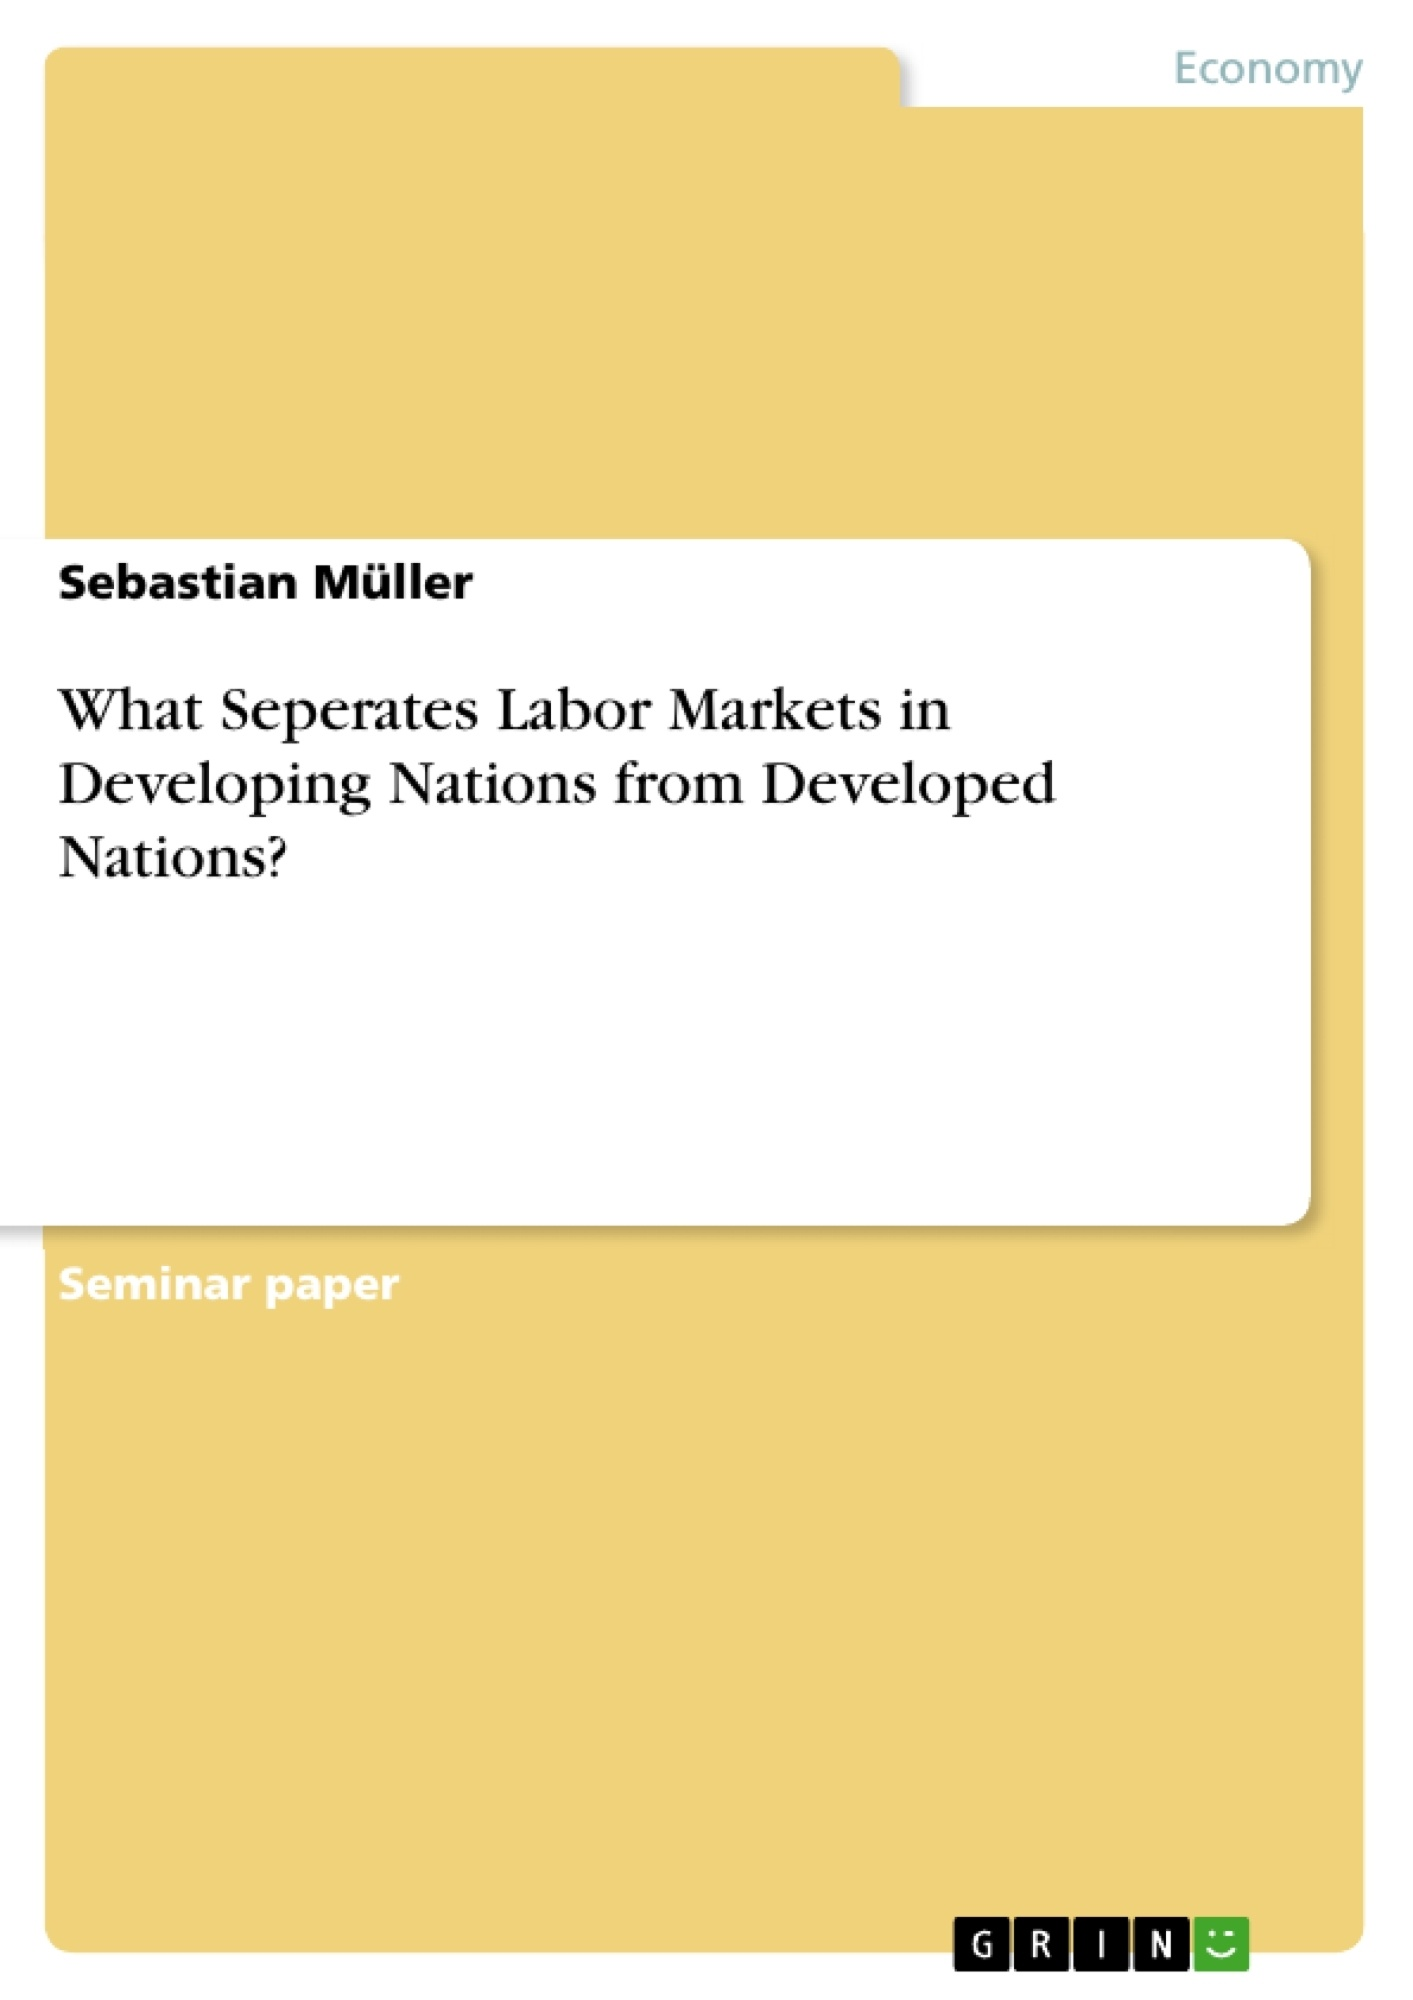 Title: What Seperates Labor Markets in Developing Nations from Developed Nations?